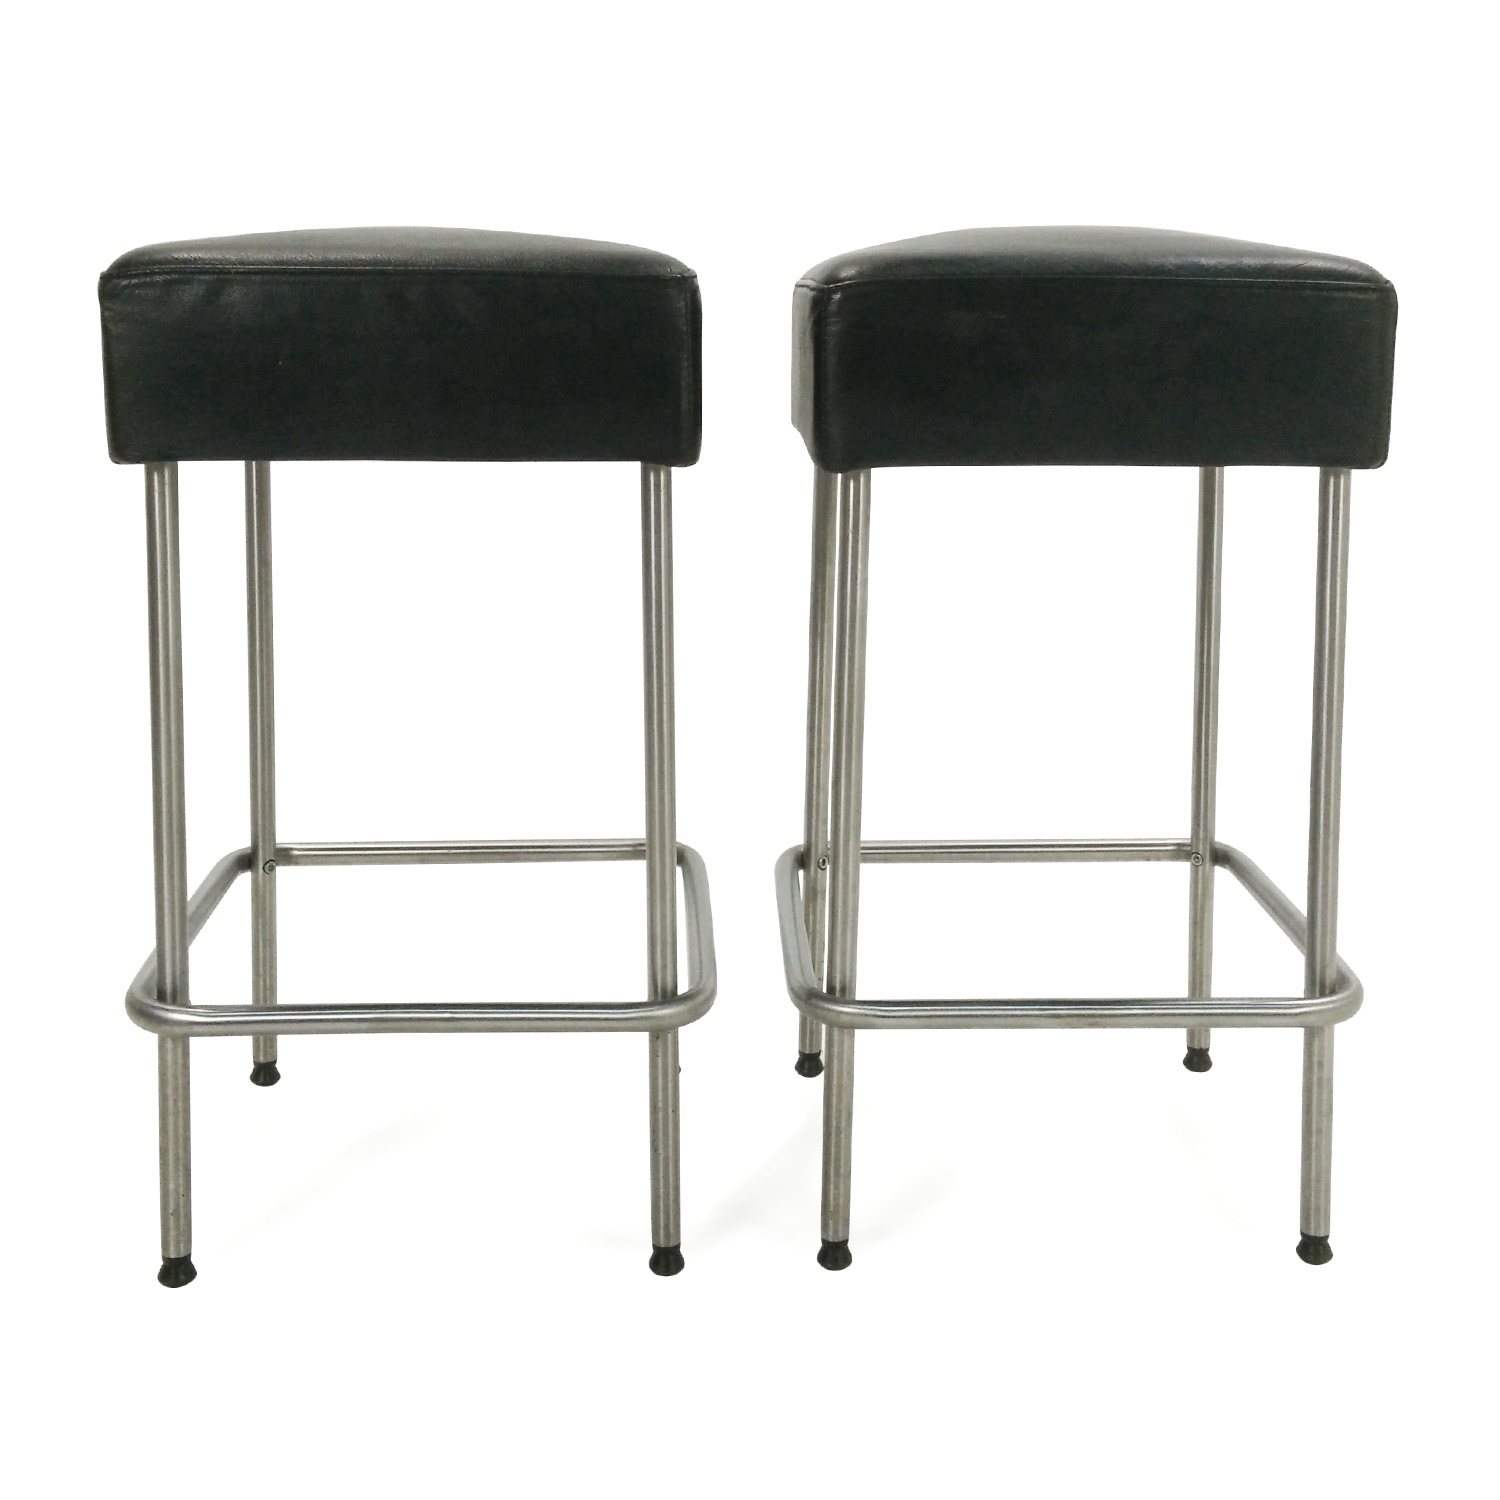 IKEA Black Faux Leather Bar Stools IKEA